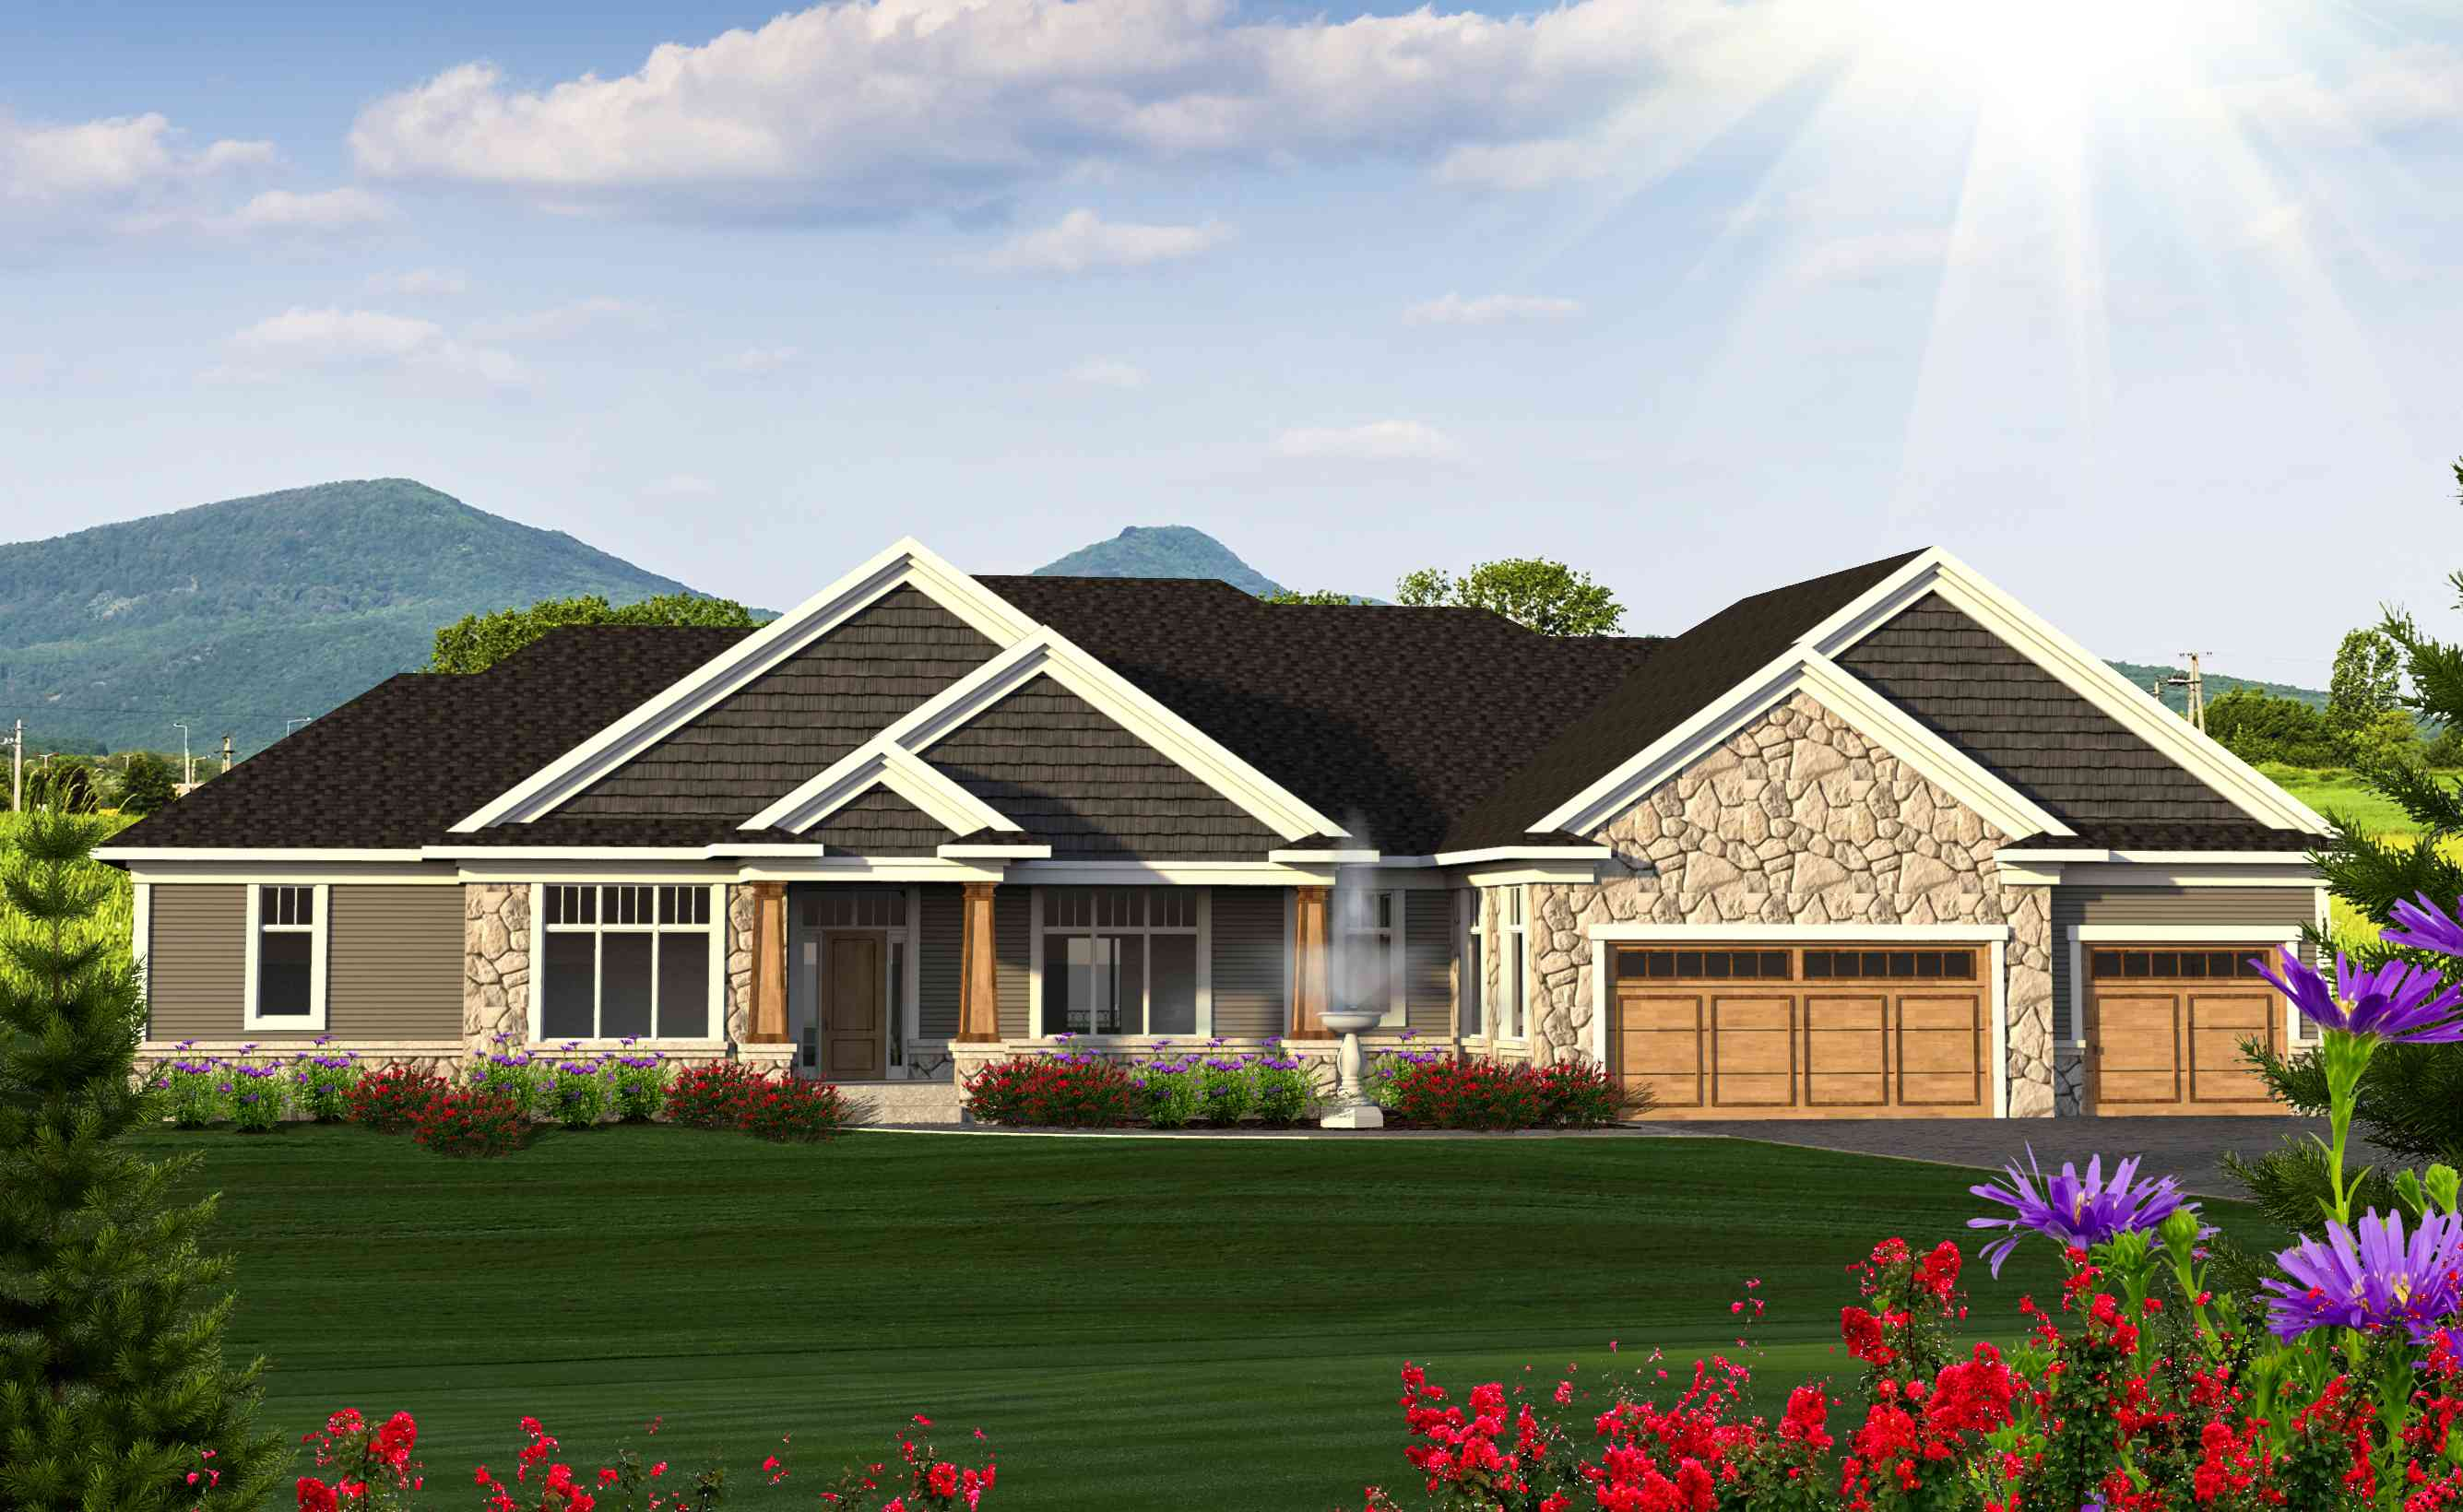 Ranch house plan with in law suite 89976ah 1st floor for Home plans in law suite